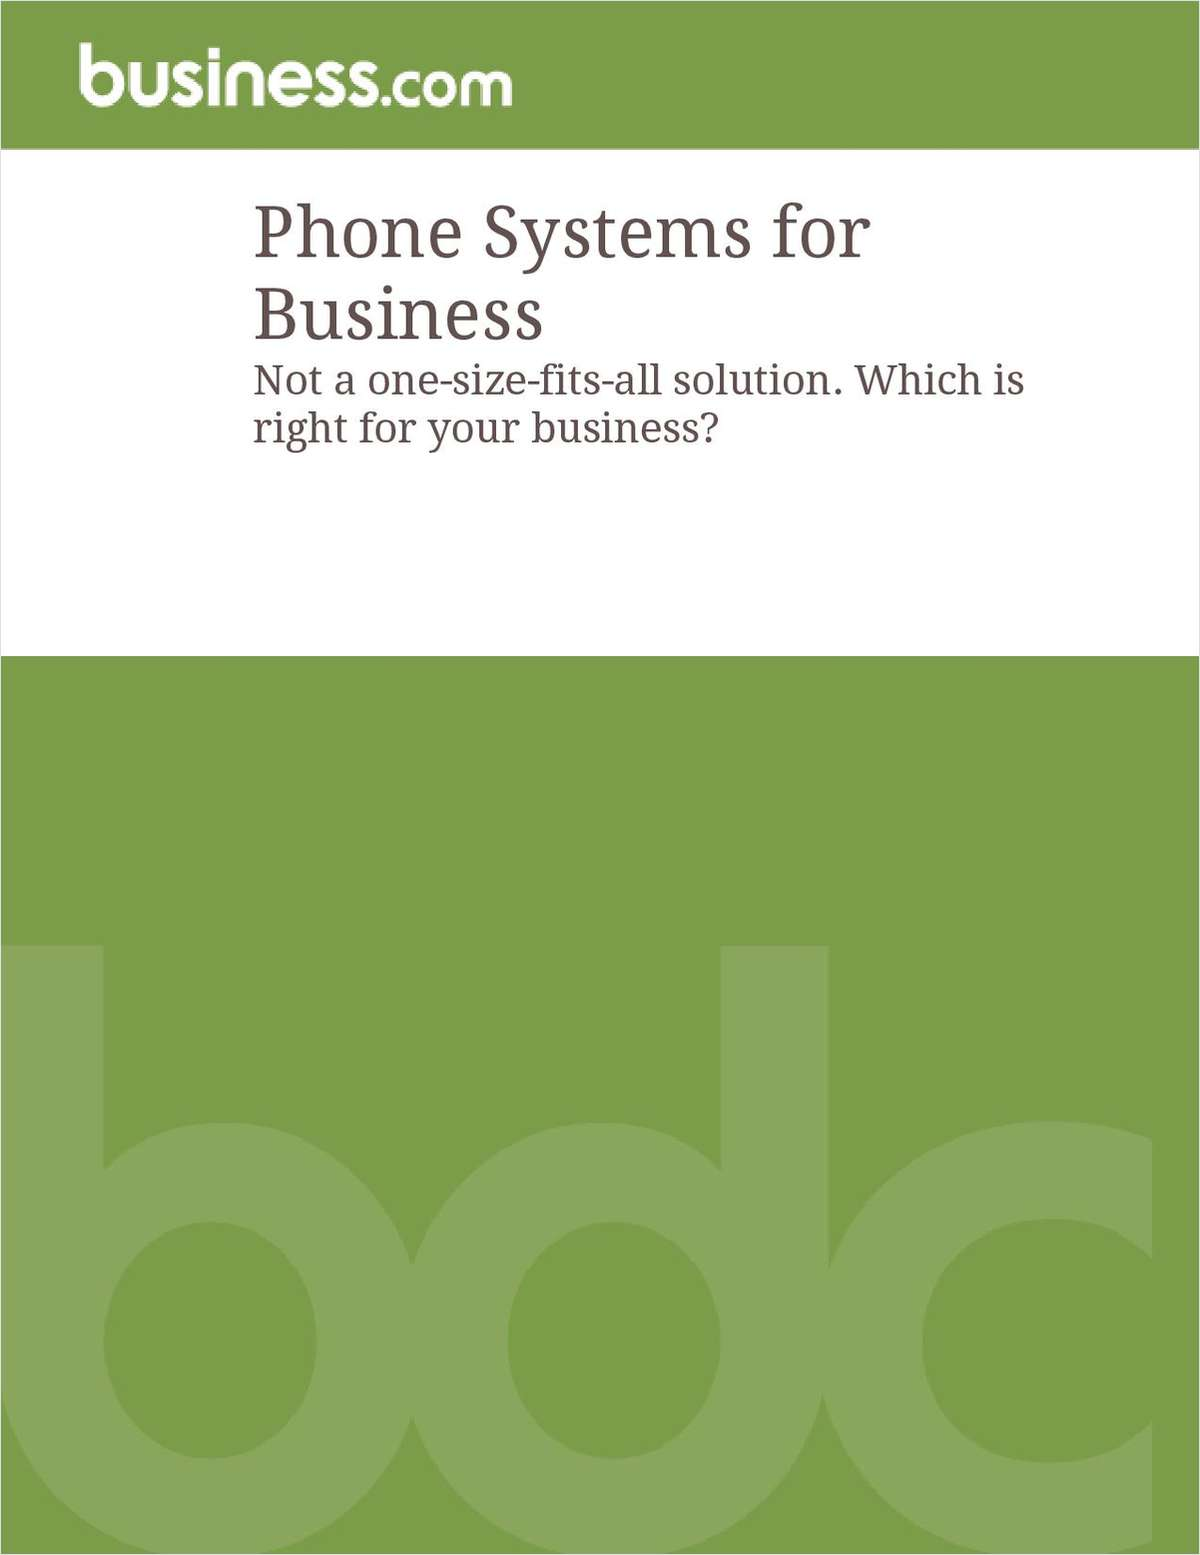 Phone Systems Not a One-Size-Fits-All Solution: Which is Right For Your Business?